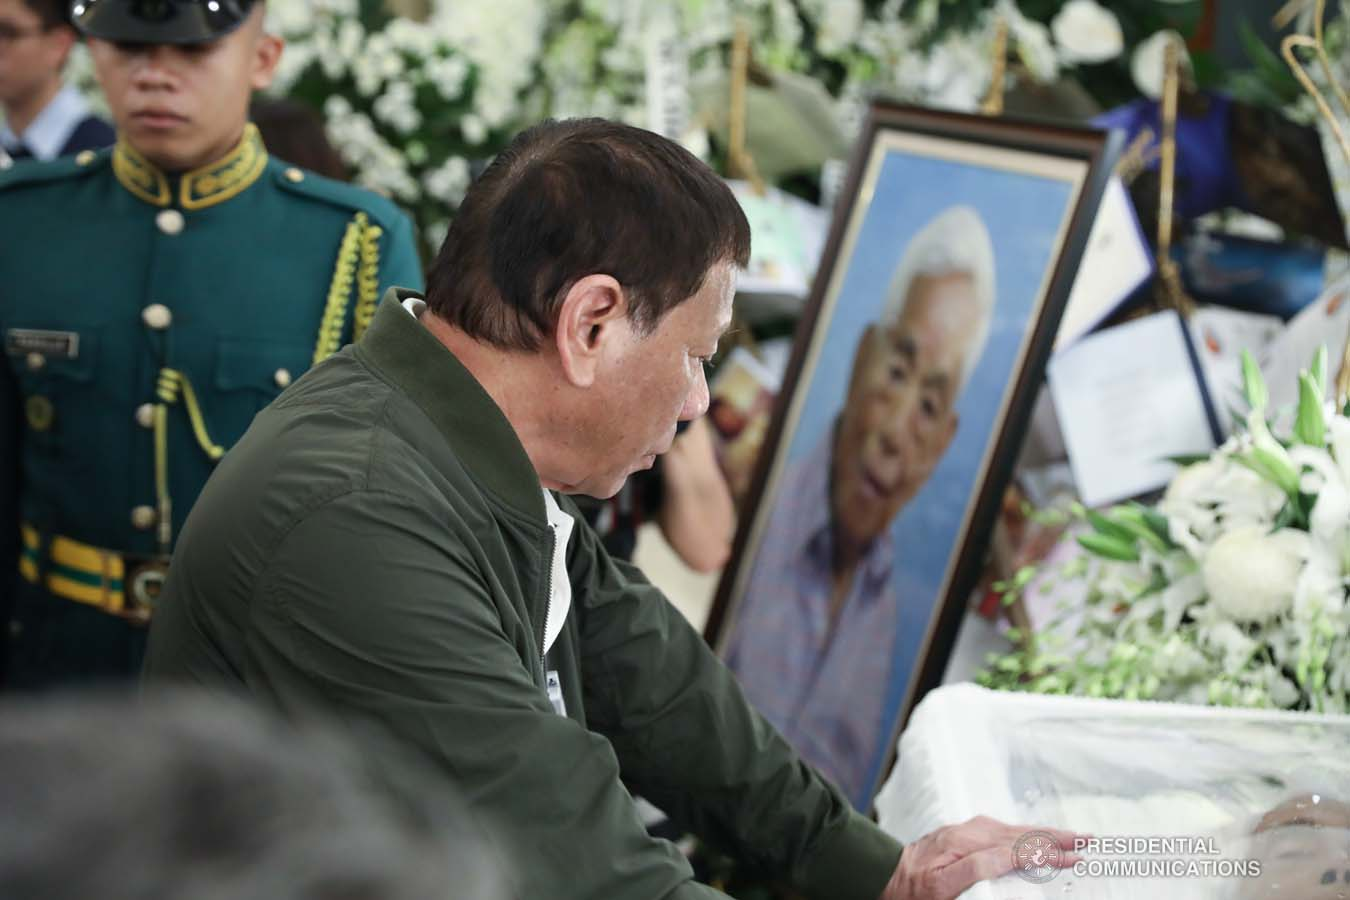 President Rodrigo Roa Duterte pays his last respects to the late former Senate President Aquilino Pimentel Jr. as he visits the wake at the Heritage Memorial Park in Taguig City on October 22, 2019. ROBINSON NIÑAL JR./PRESIDENTIAL PHOTO